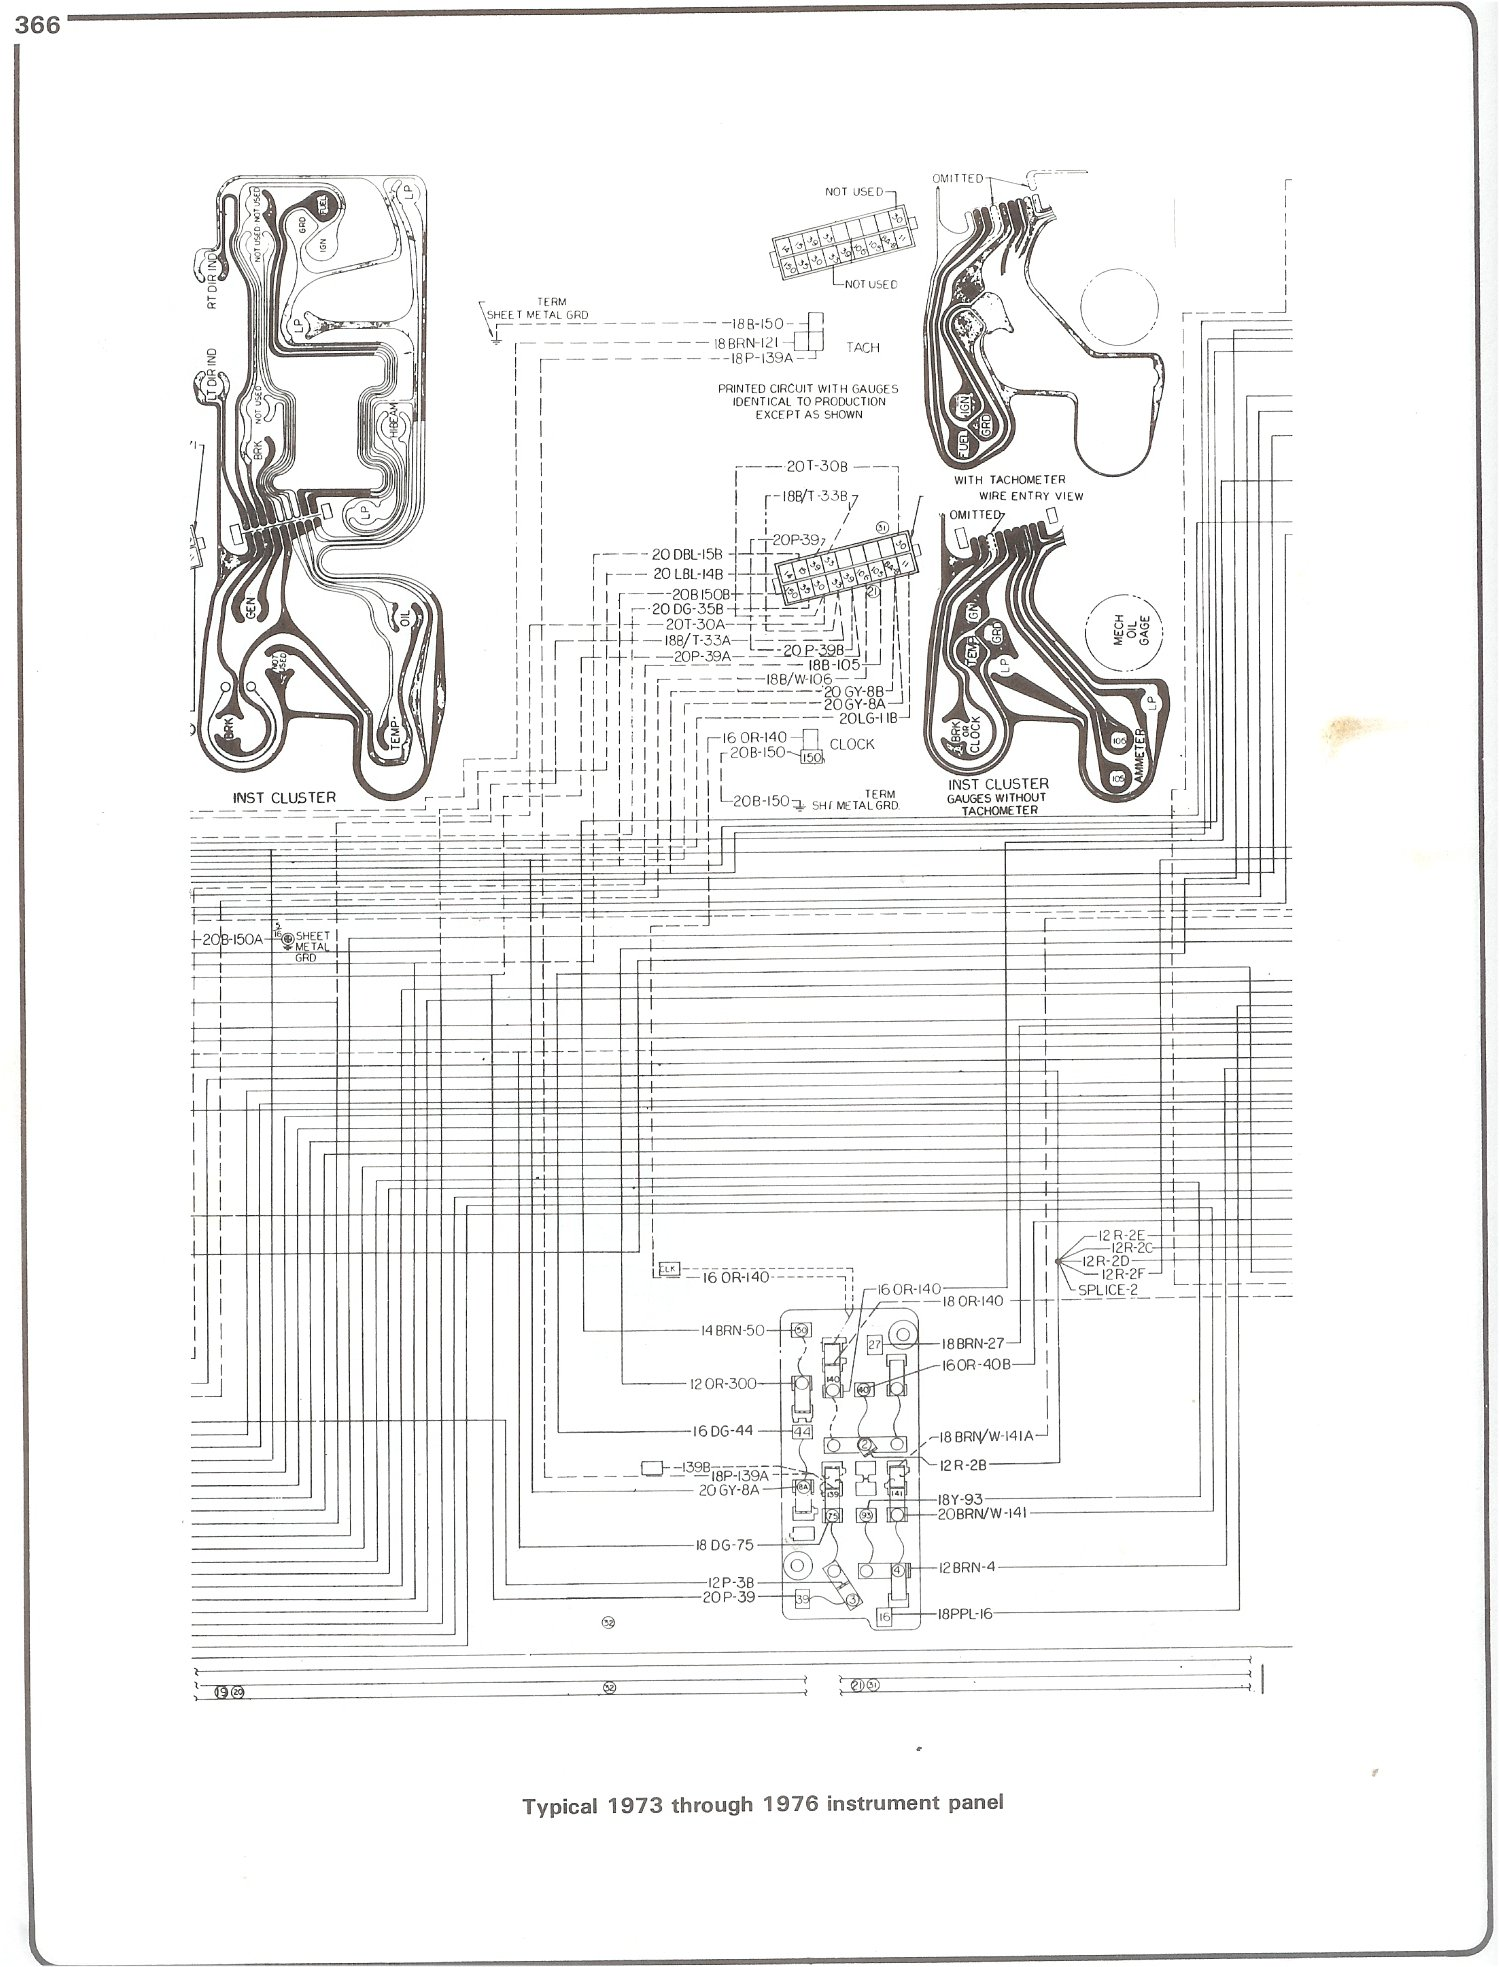 78 Gmc Wiring Diagram Diagrams For 1981 Chevy Truck Complete 73 87